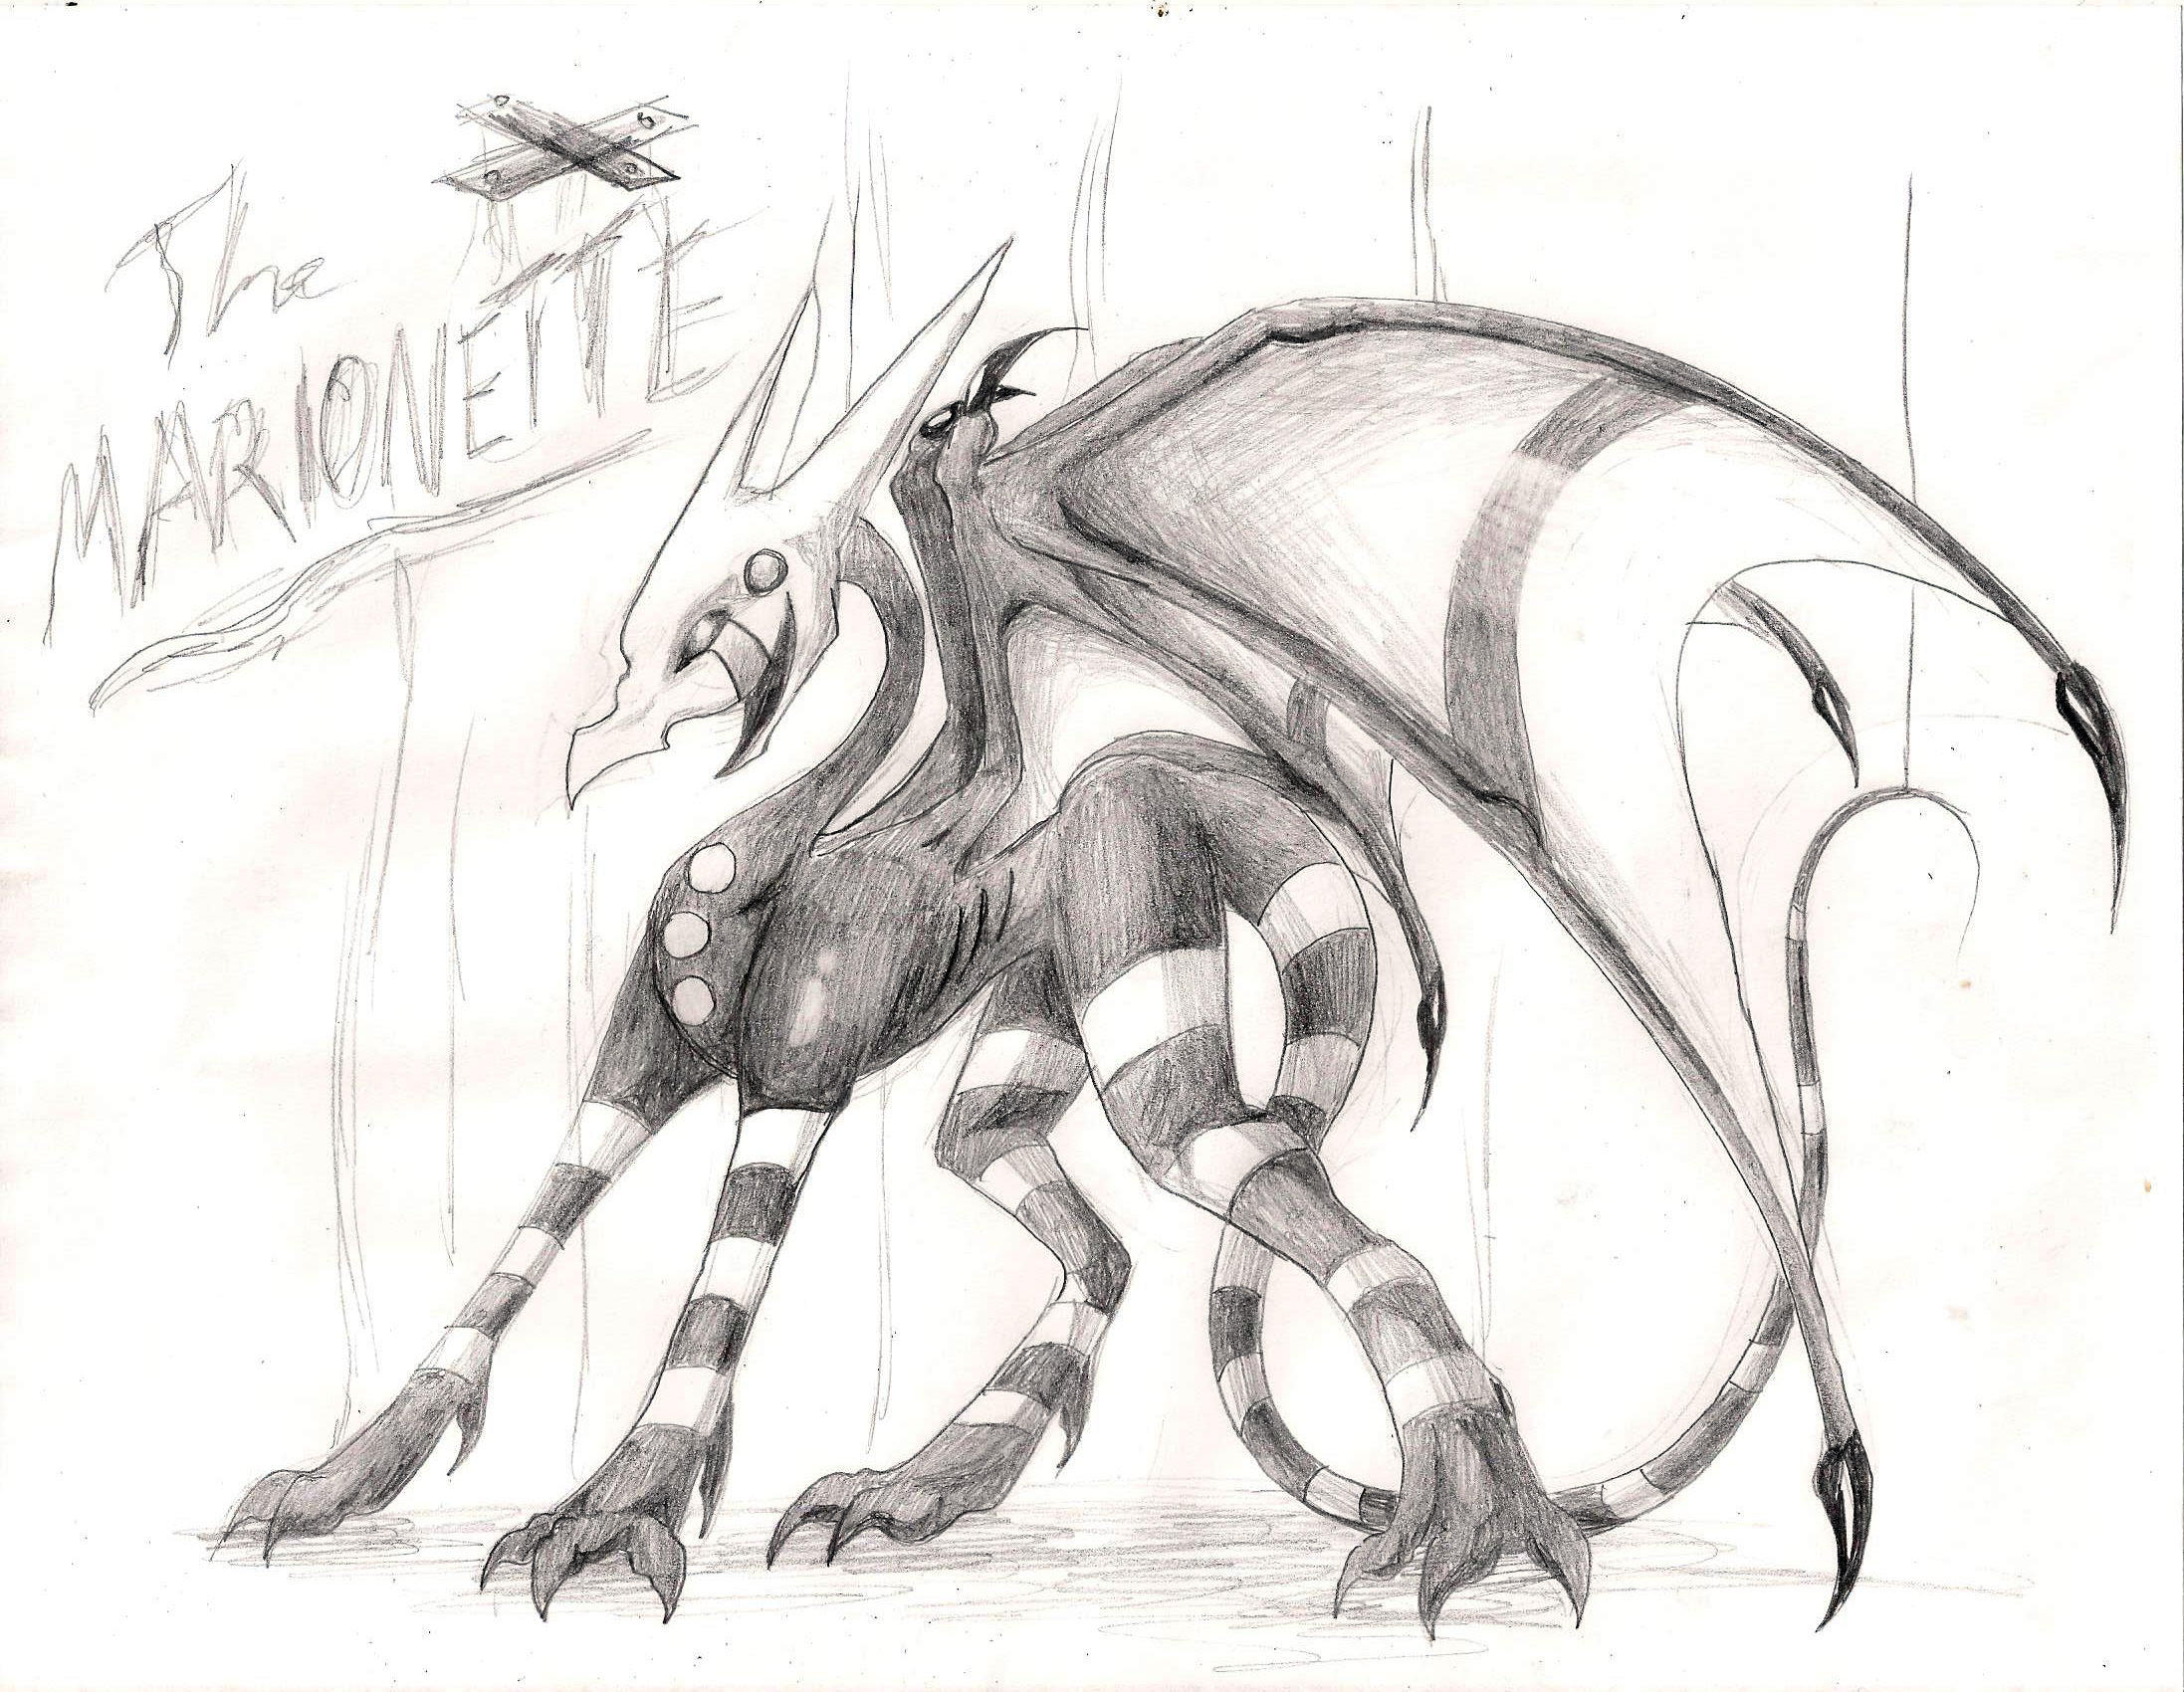 The Marionette By Robynthedragon On Deviantart